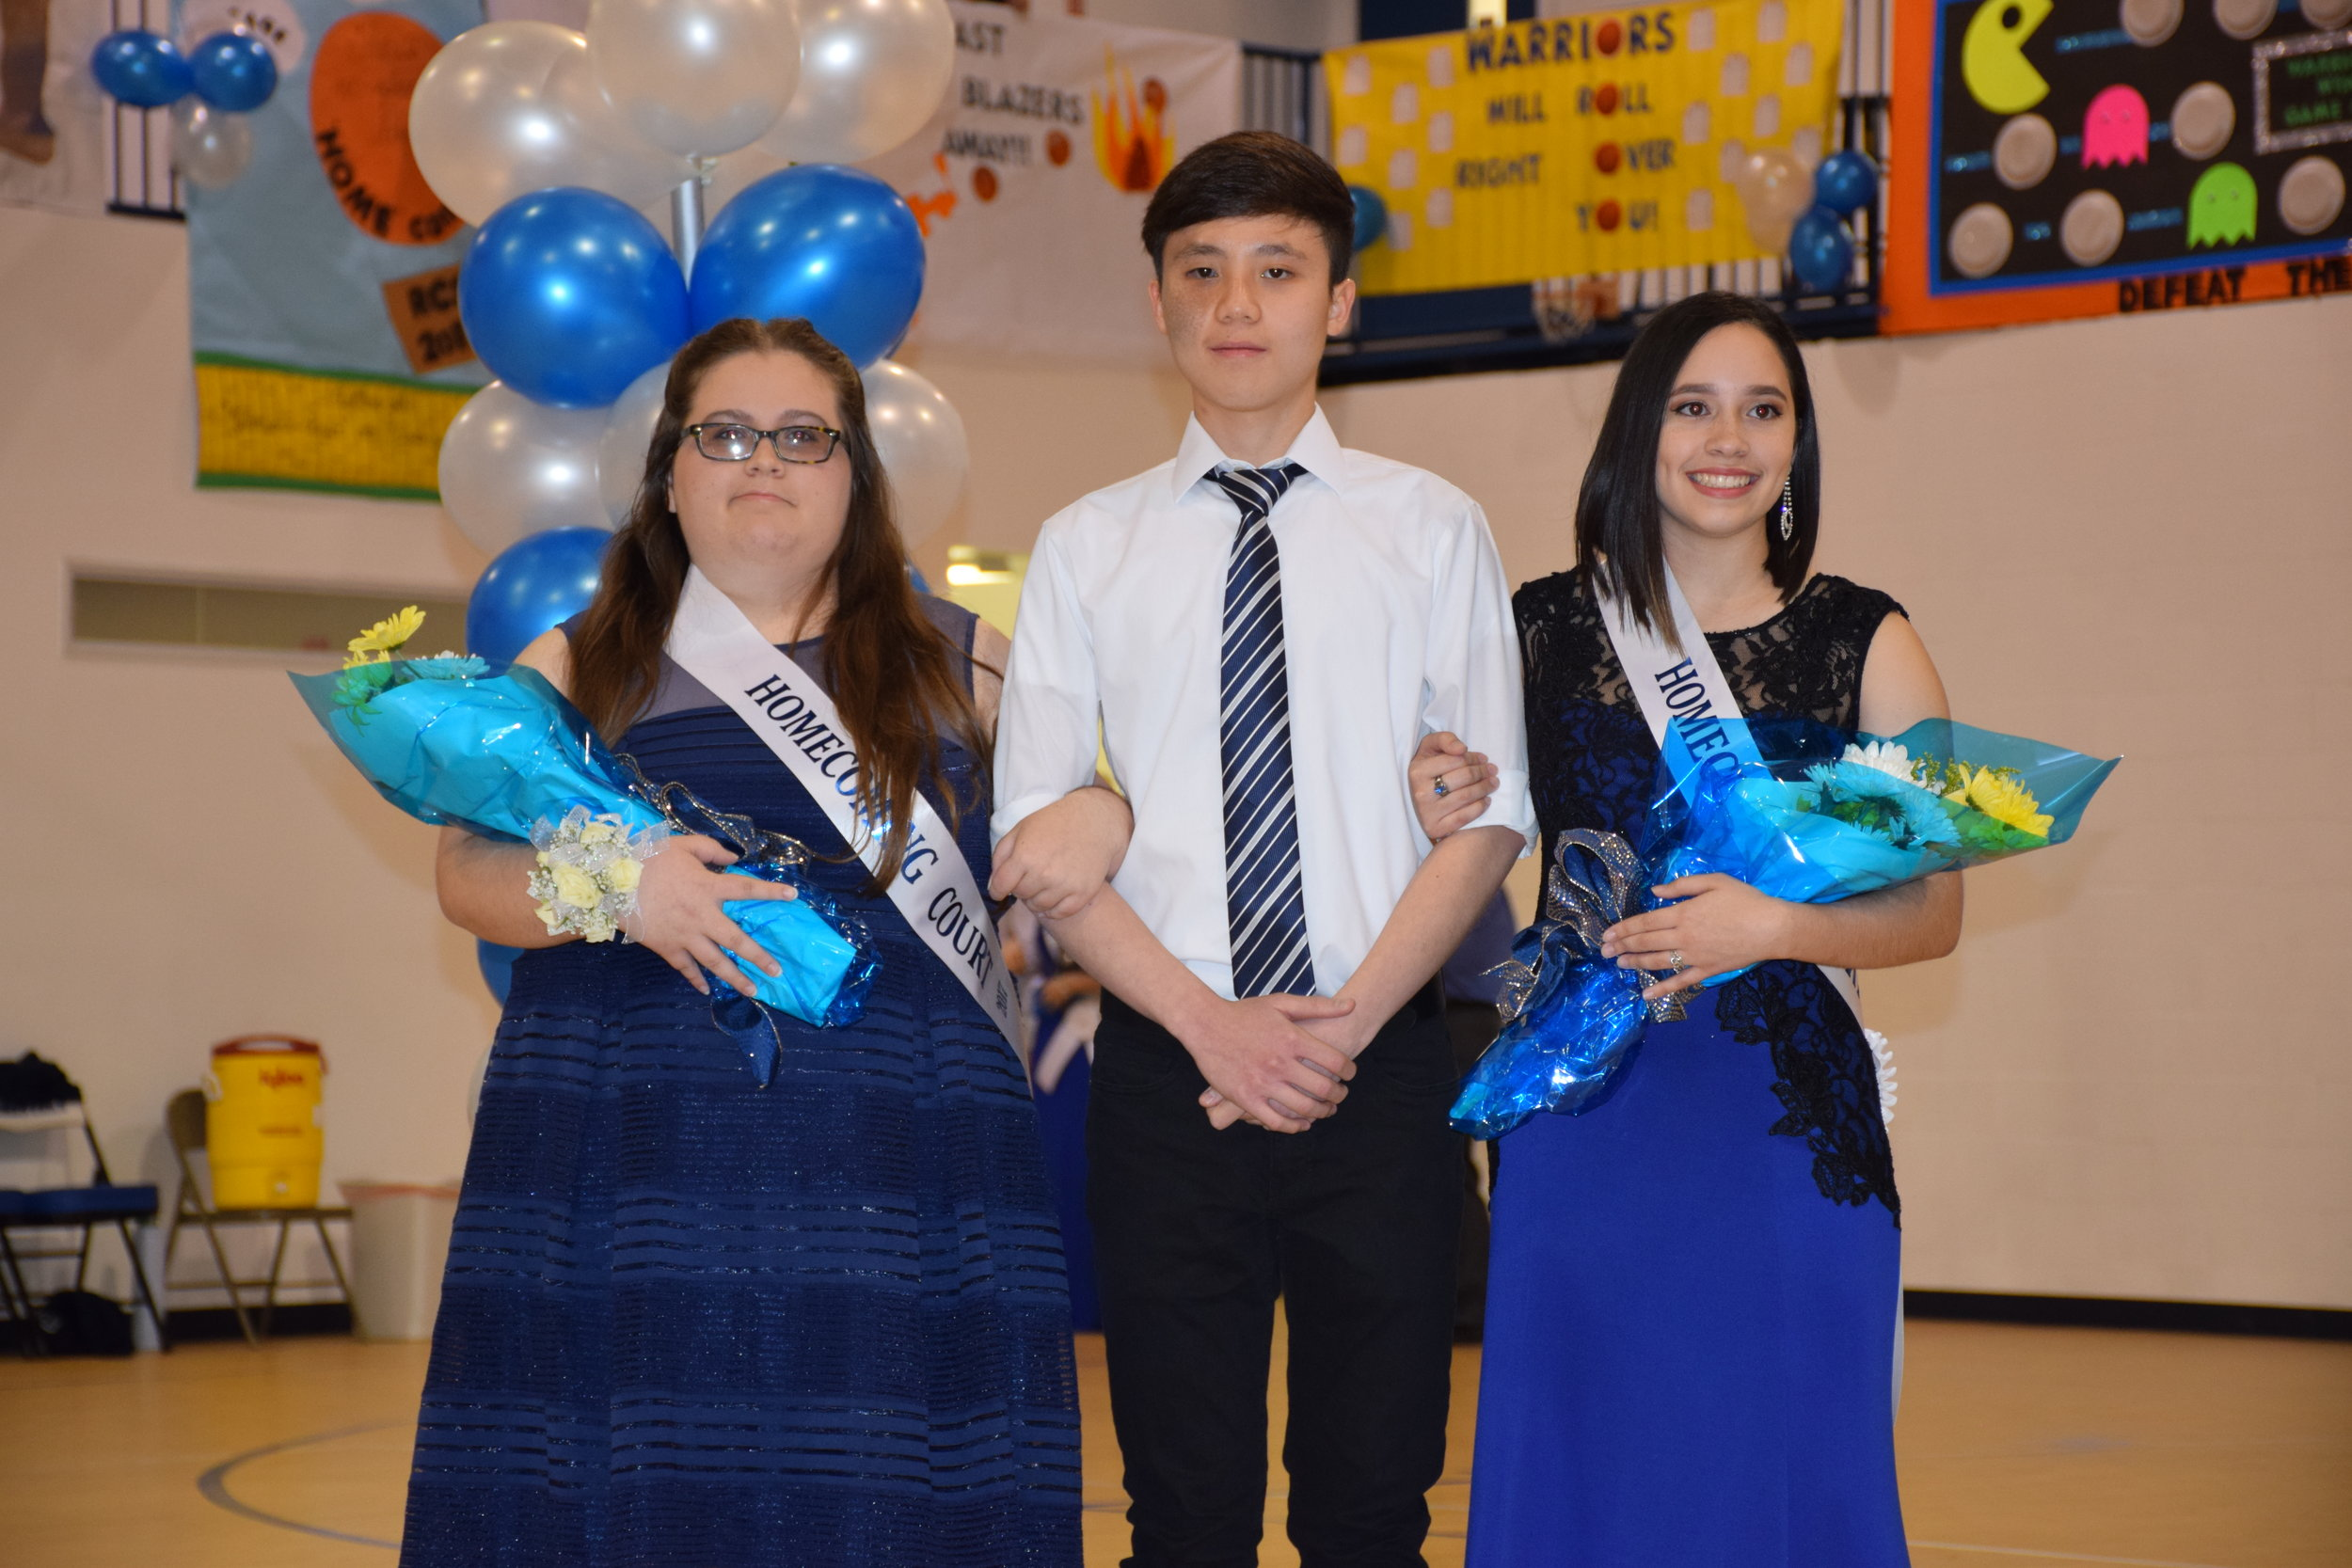 Jessica Heath, Dat Huynh & Deliyanis Rosa -Homecoming Court